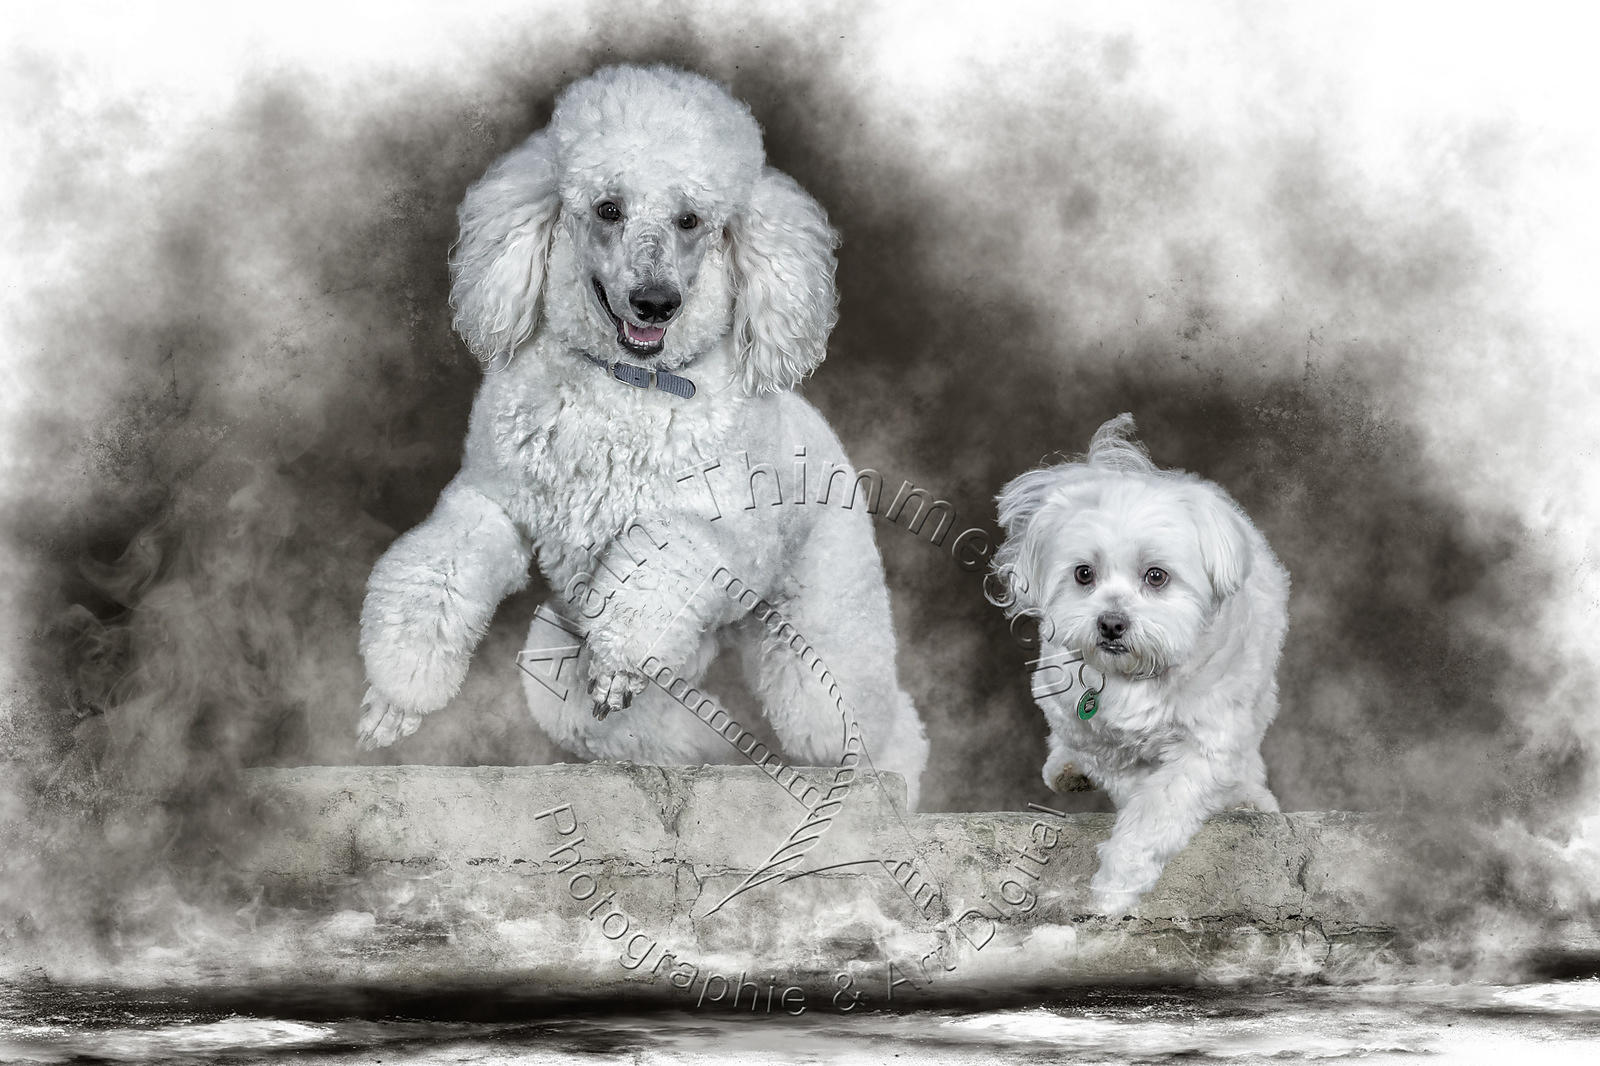 2020-Art-Digital-Alain-Thimmesch-Chien-8